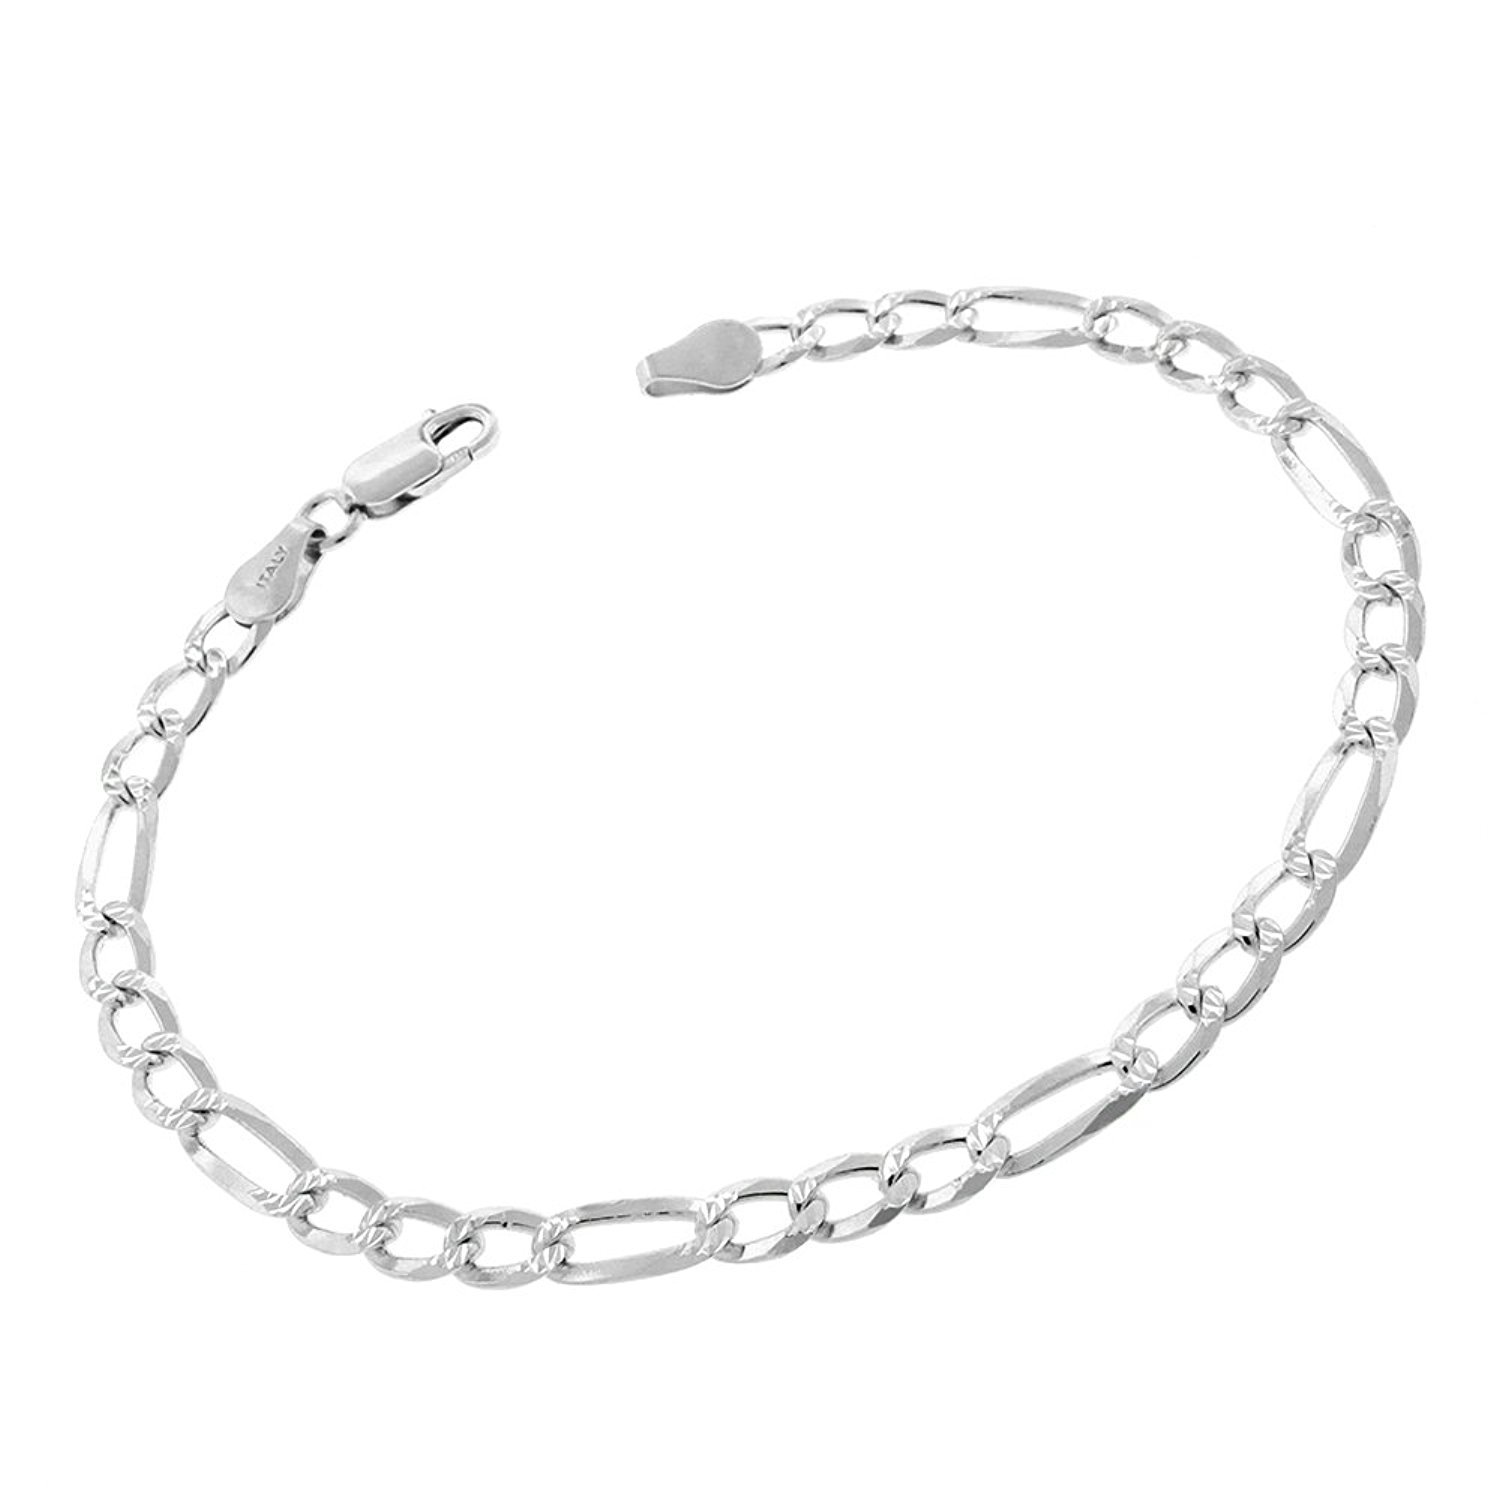 Sterling Silver Italian 5mm Figaro Link Diamond-Cut Pave ITProLux Solid 925 Bracelet Chain 8.5''